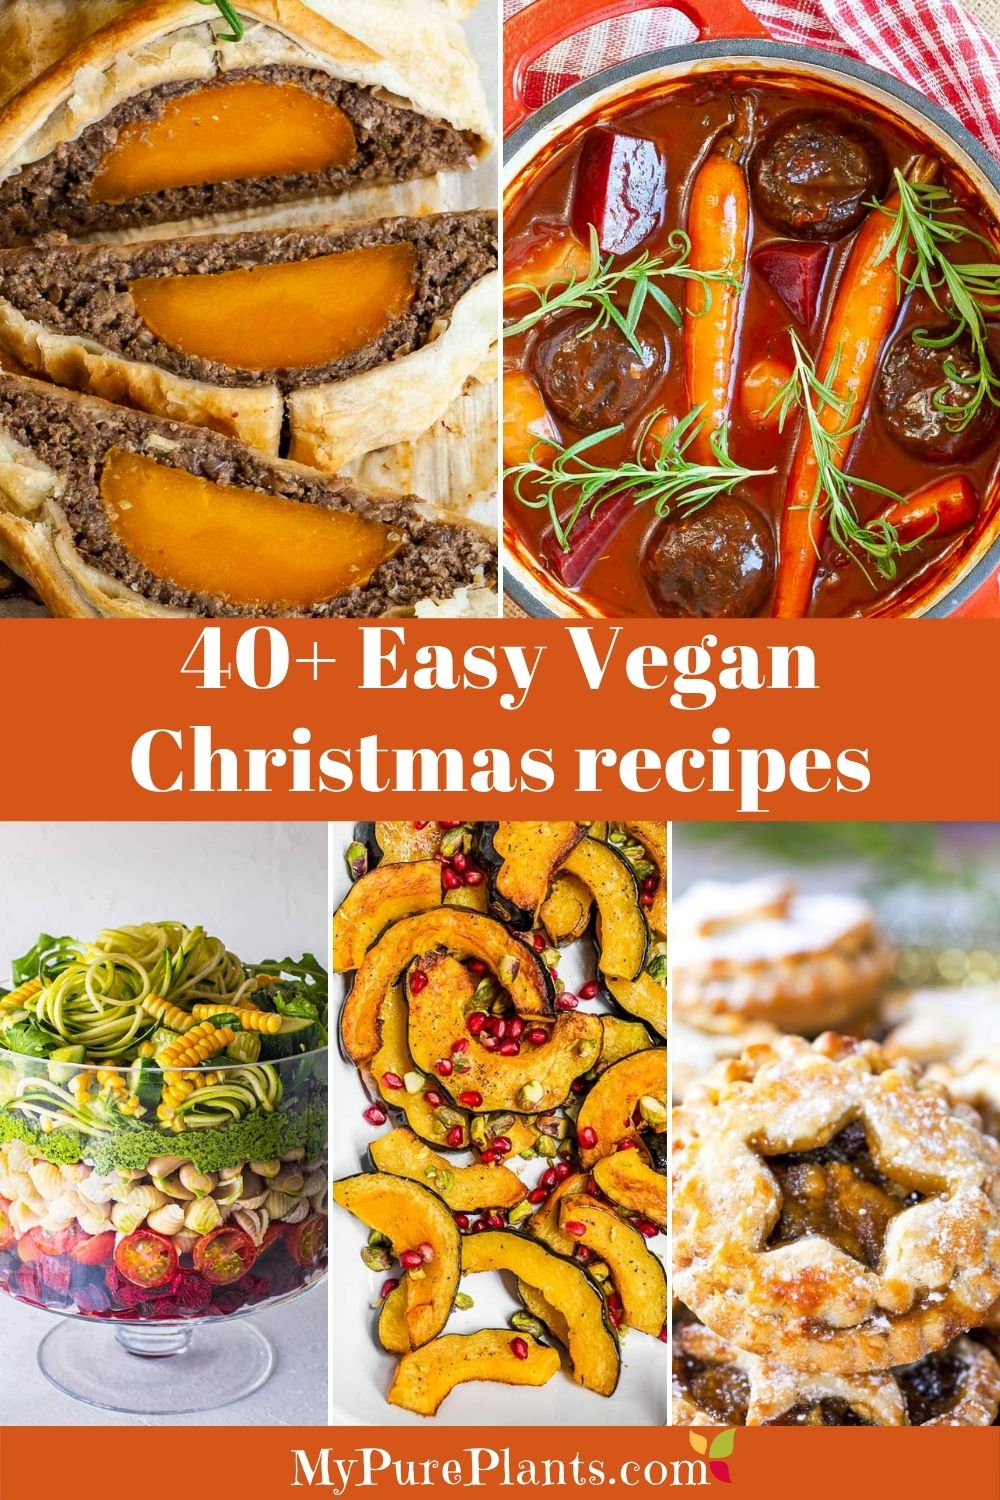 5 photo collage of colorful dishes with a text overlay saying 40+ Easy Vegan Thanksgiving Recipes